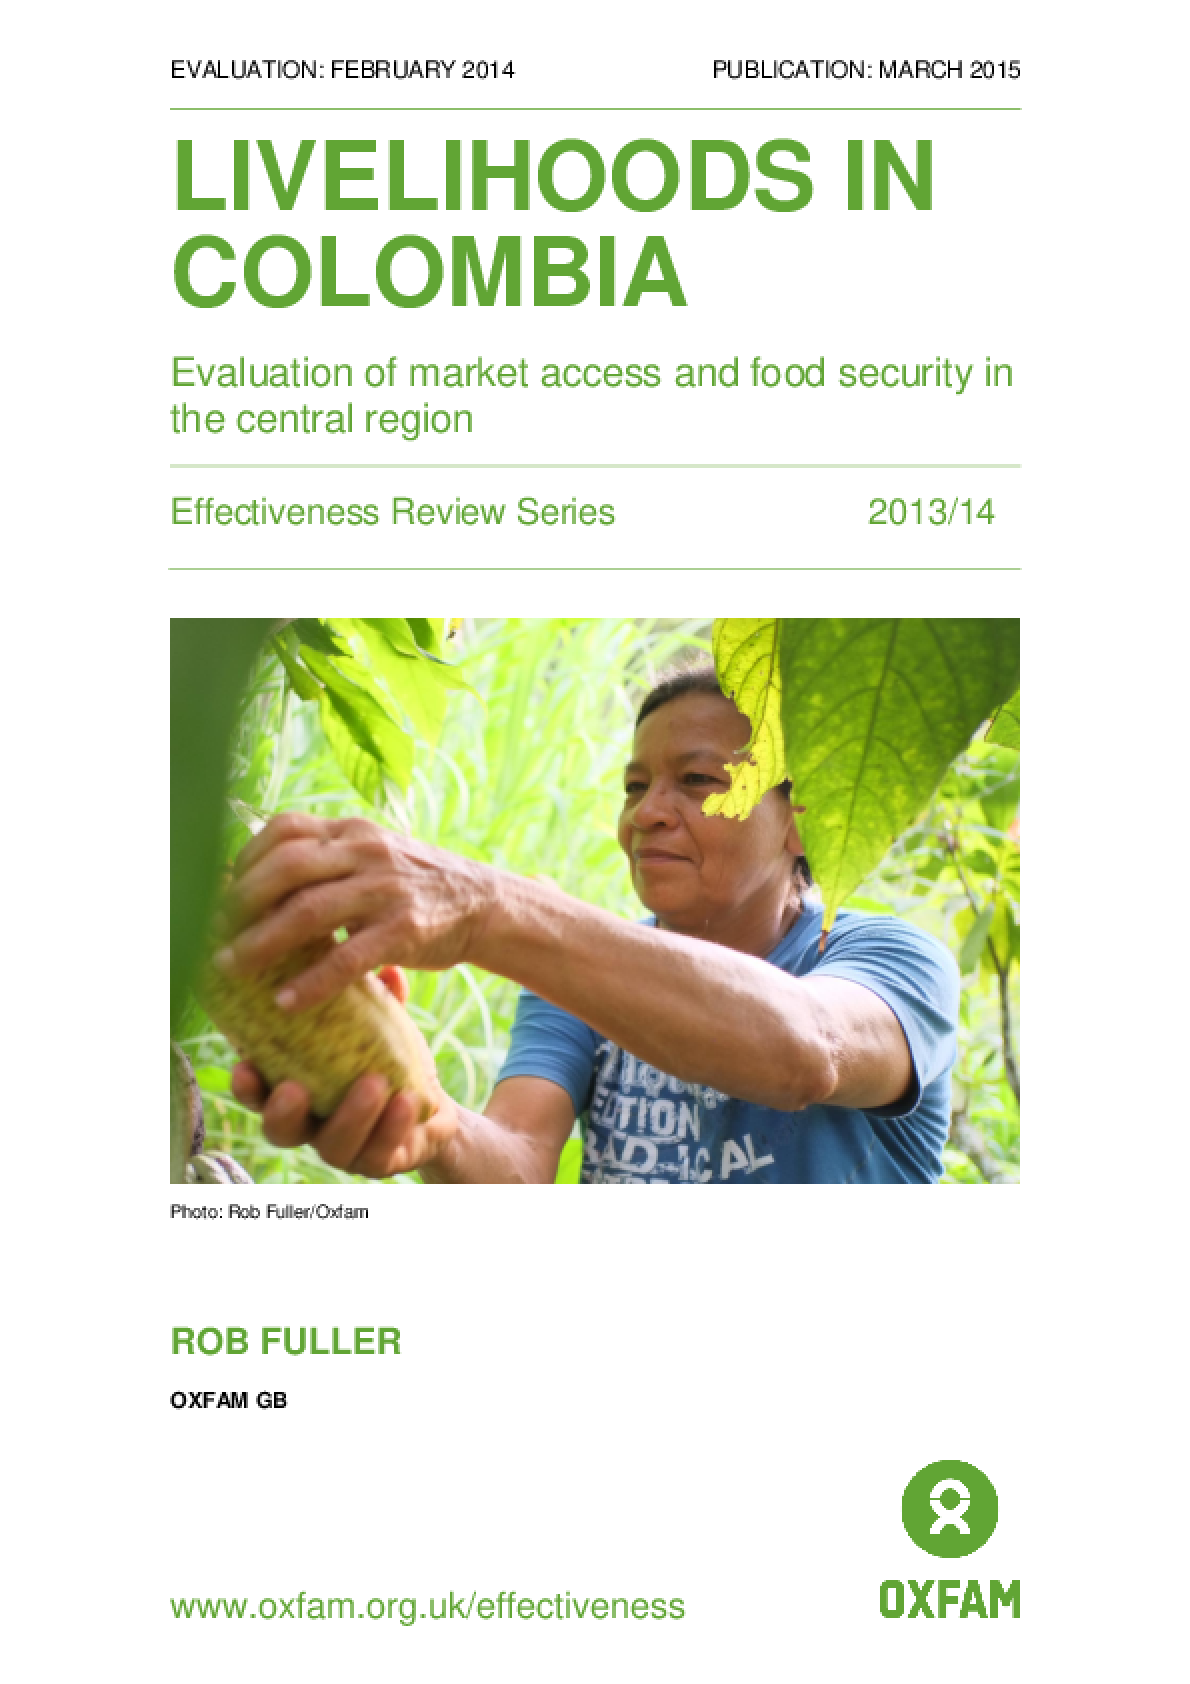 Livelihoods in Colombia: Evaluation of market access and food security in the central region